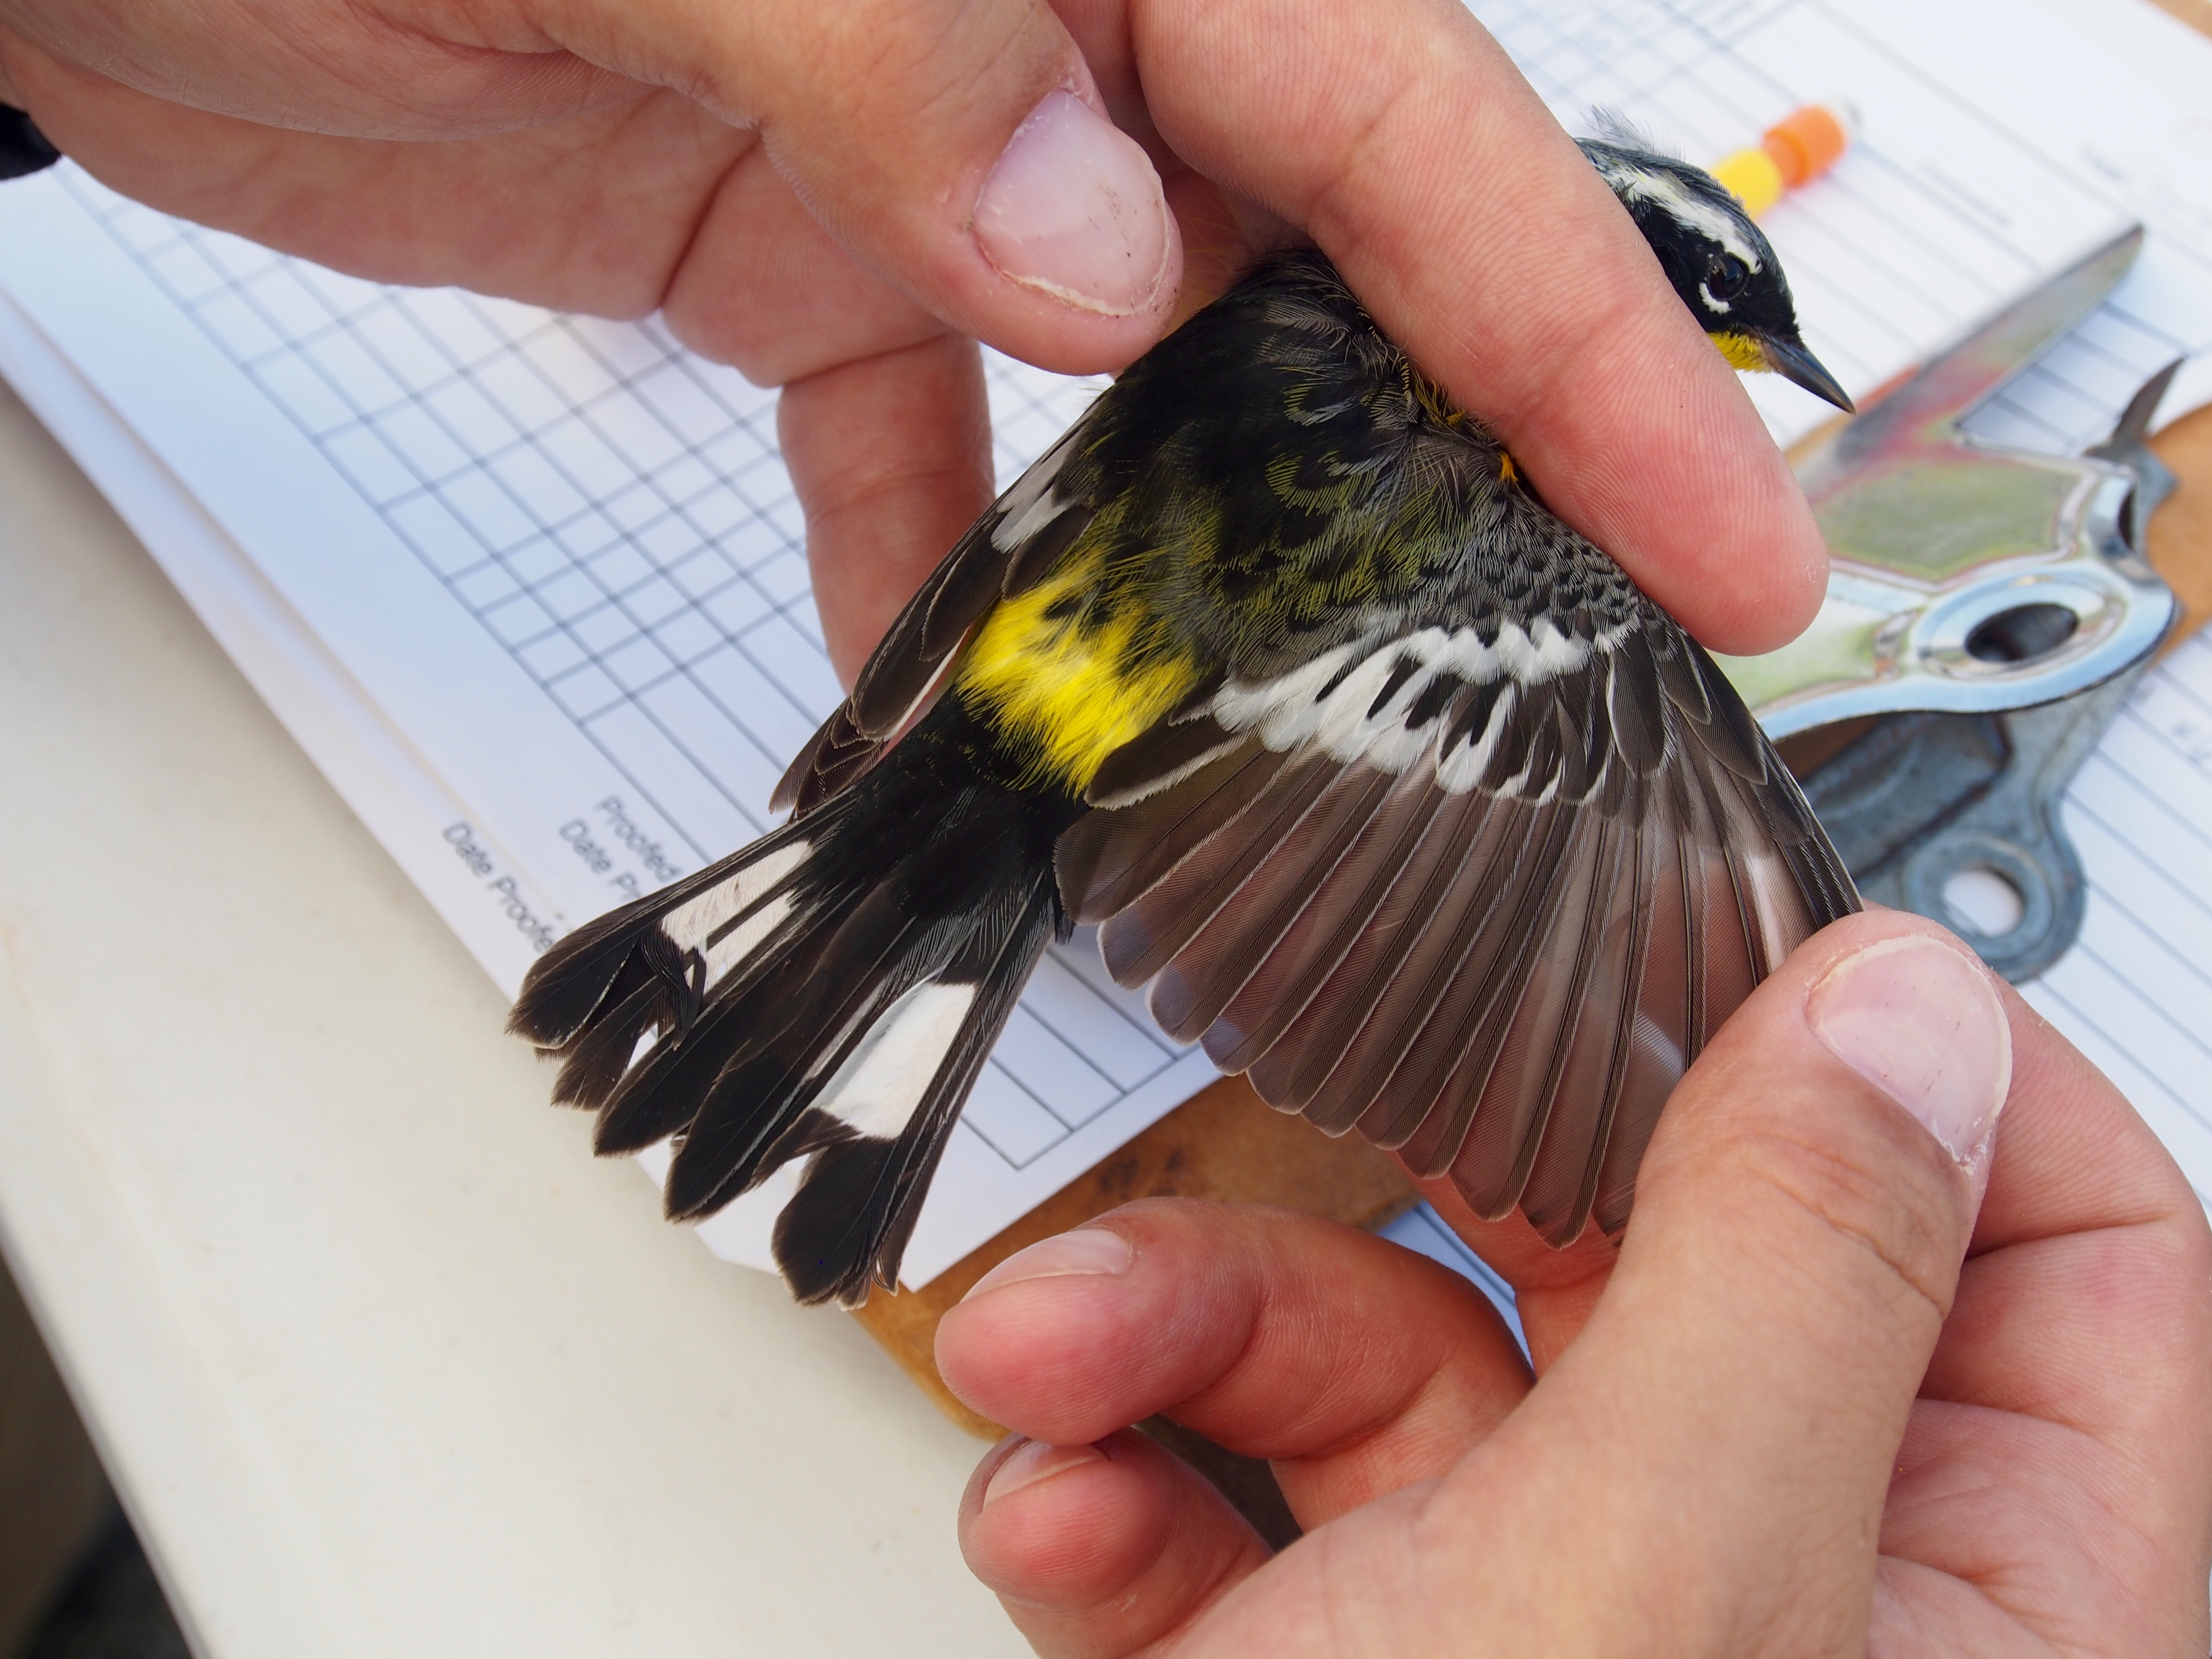 A scientist determines the age of a bird by examining its feathers